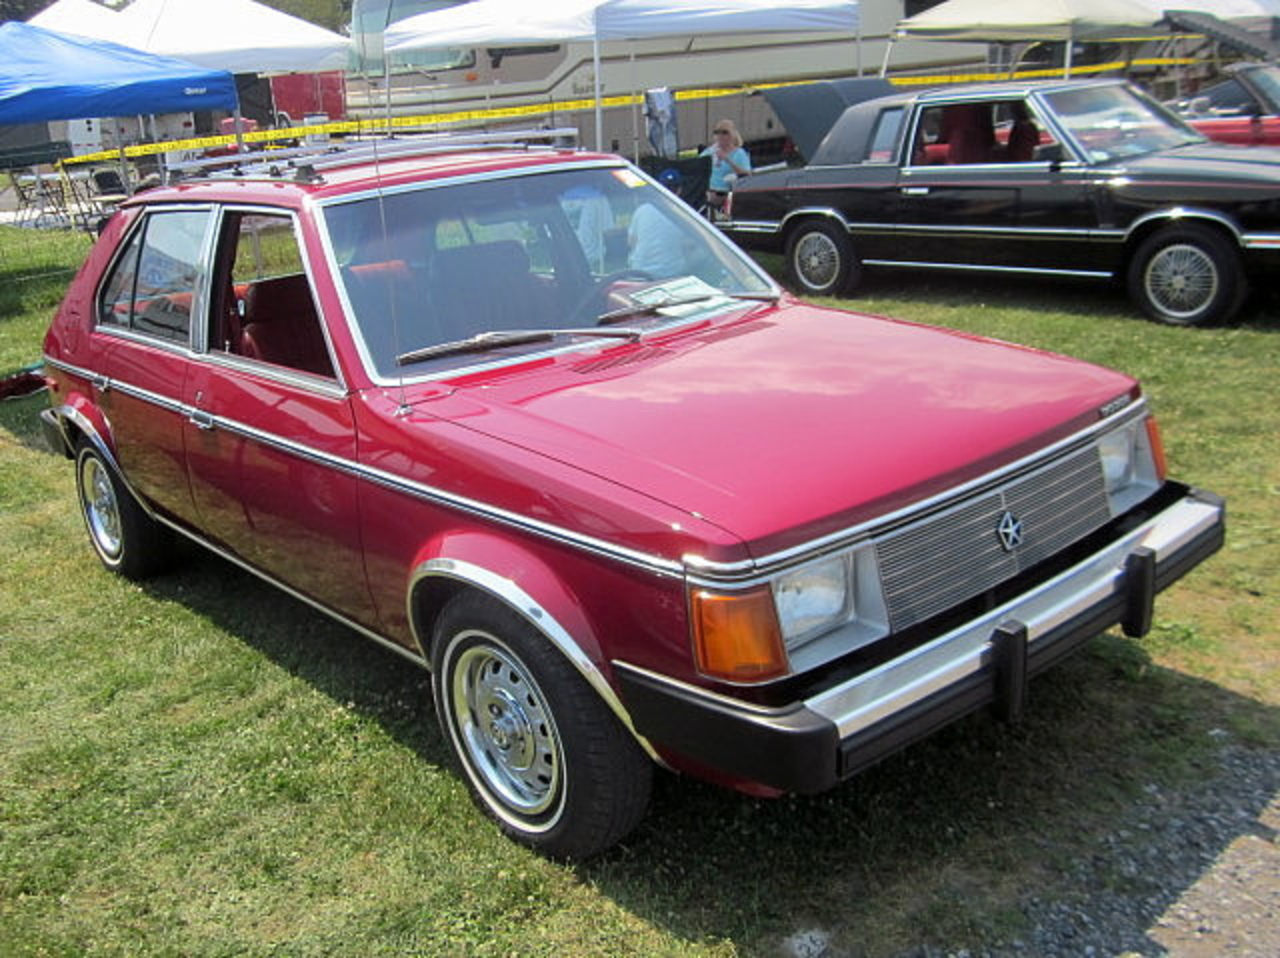 1983 Dodge Omni | Flickr - Photo Sharing!